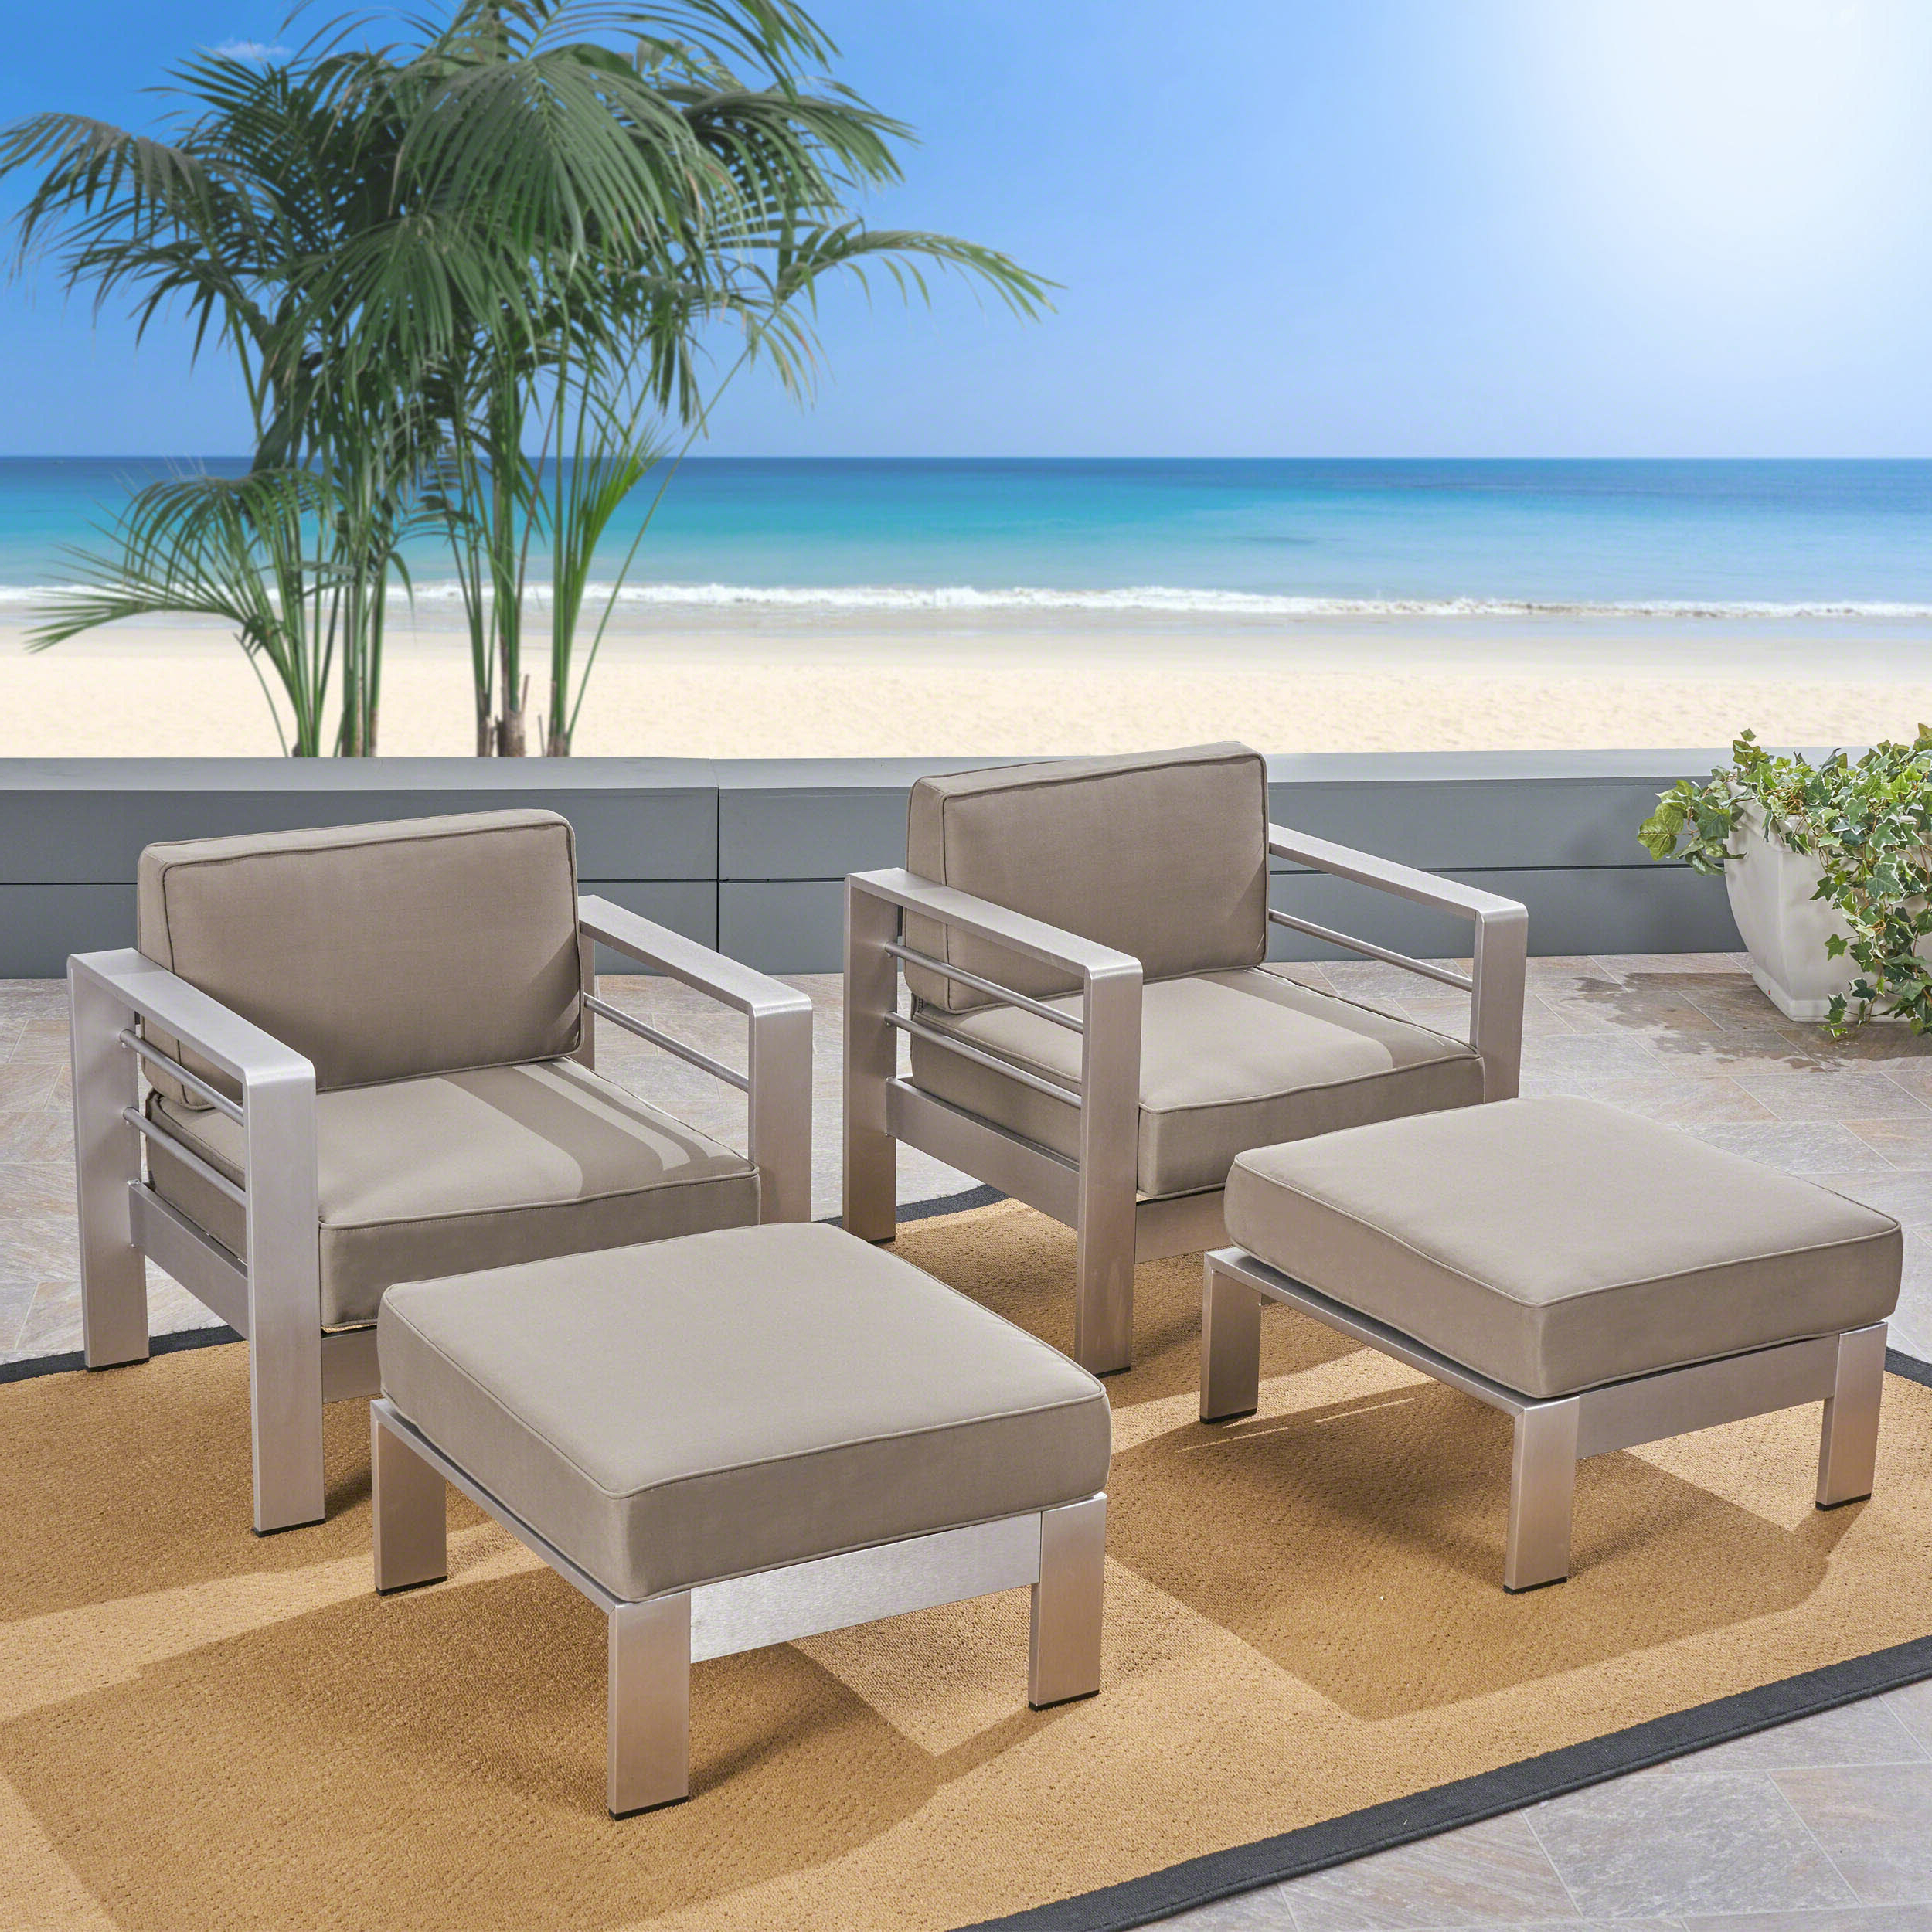 Widely Used Royalston Patio Sofas With Cushions Throughout Royalston Patio Chair With Cushions (View 15 of 20)